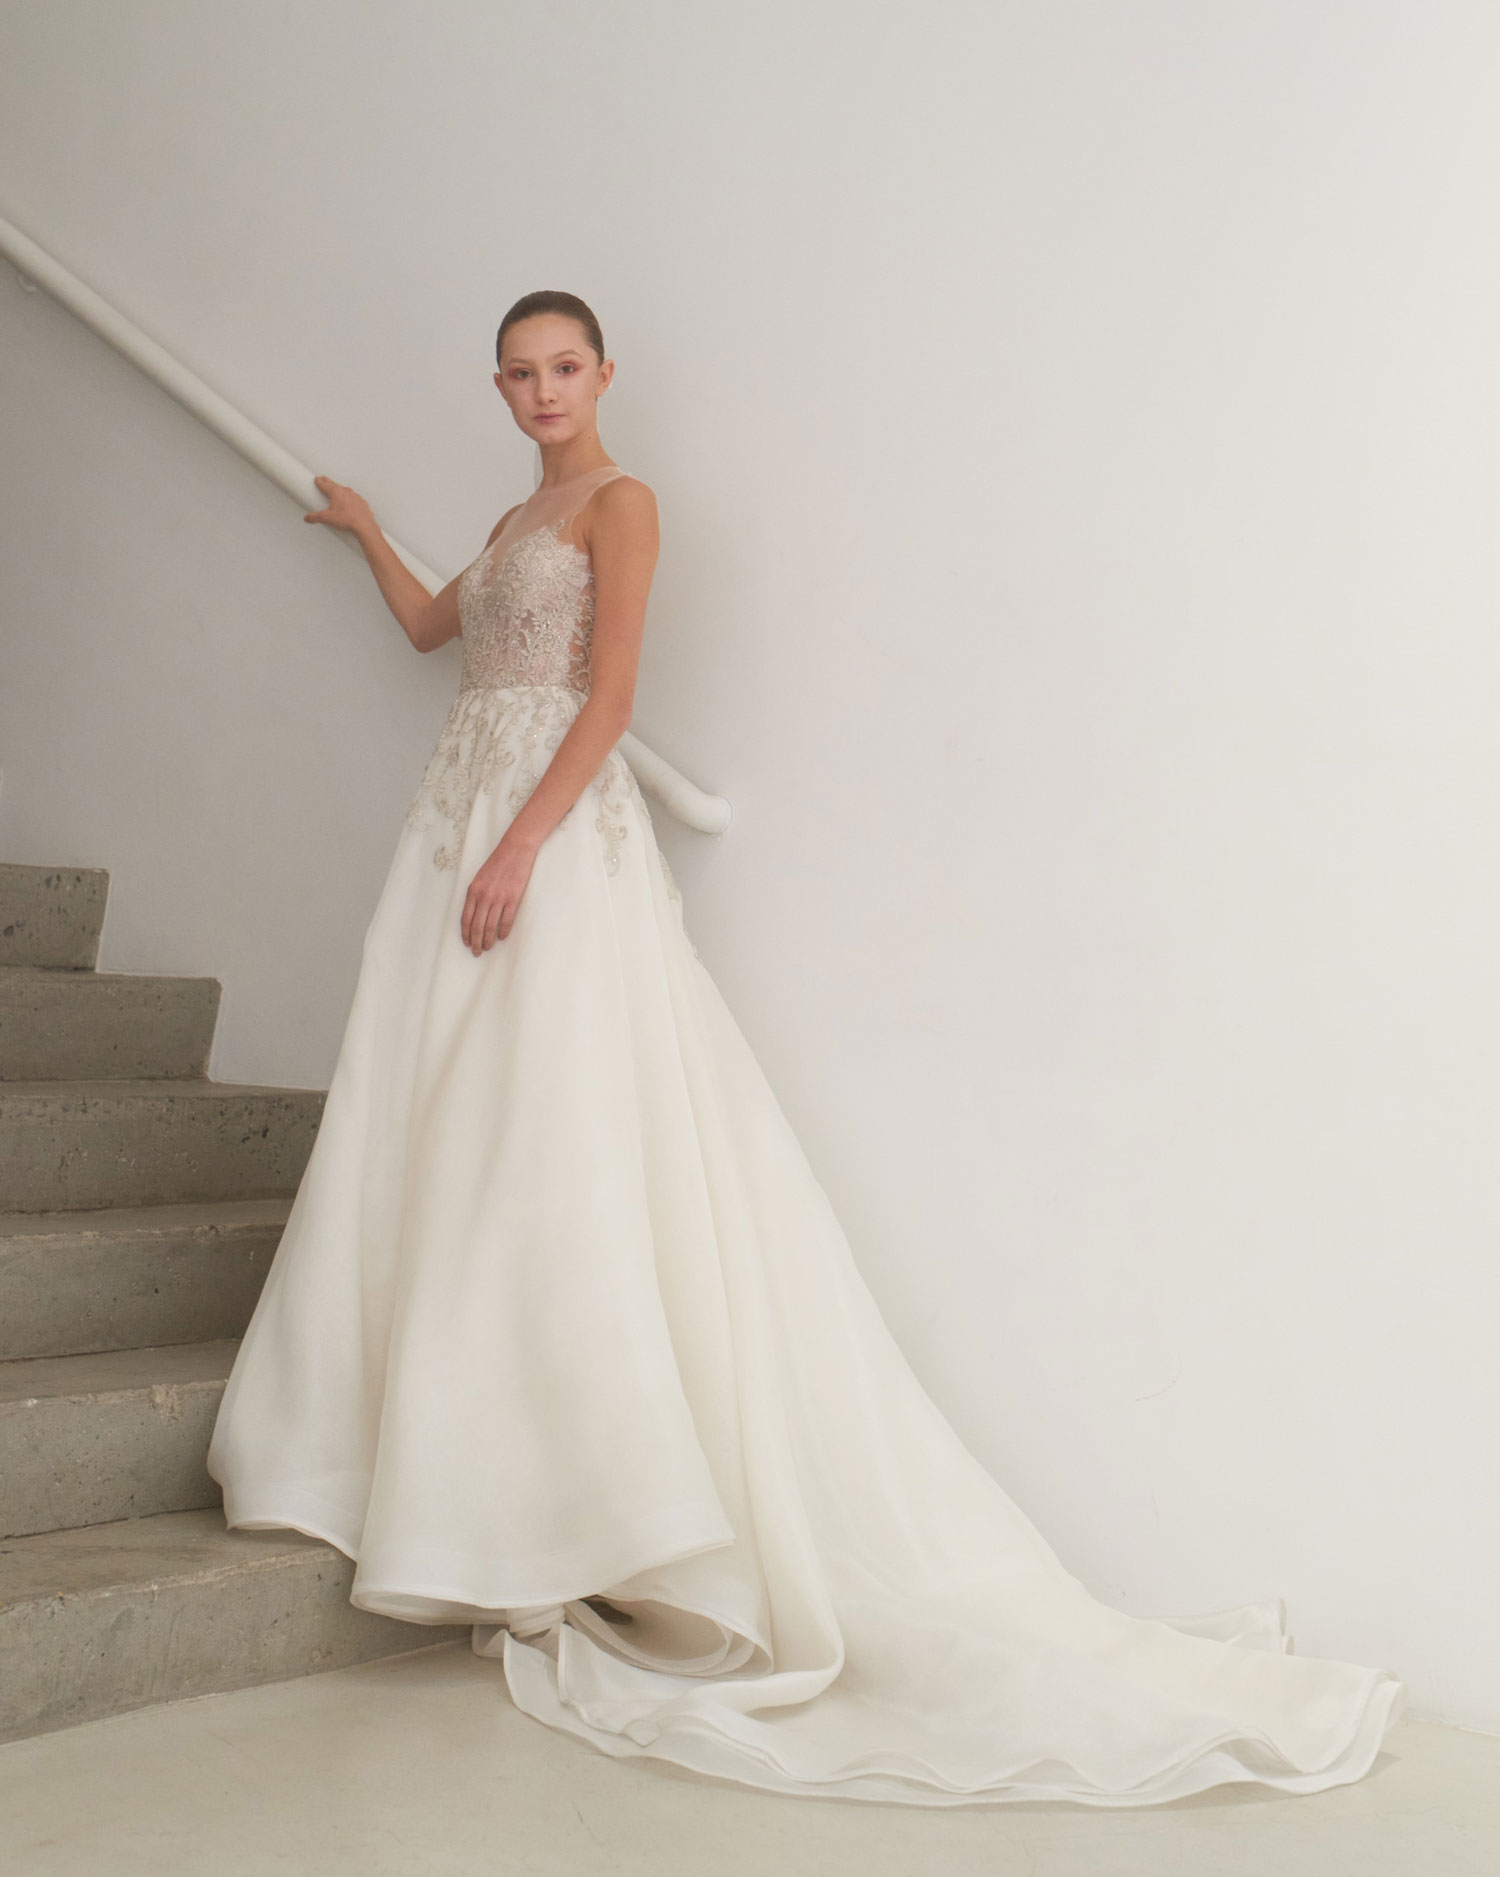 Francesca Miranda ball gown with long train royal wedding inspired bridal gown